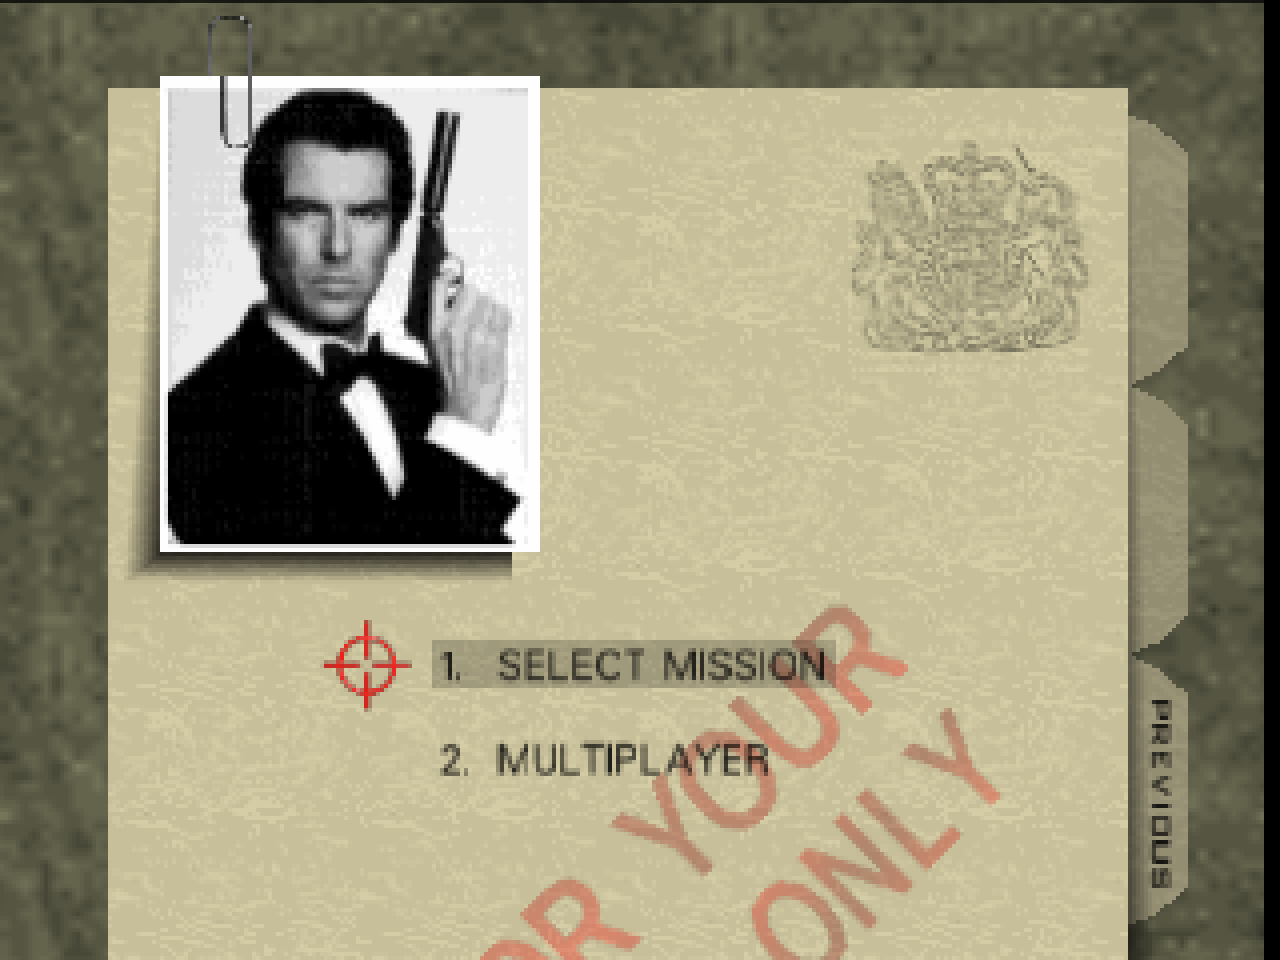 https://s3.eu-west-3.amazonaws.com/games.anthony-dessalles.com/GoldenEye 007 N64 2020 - Screenshots/GoldenEye 007-201118-172950.png